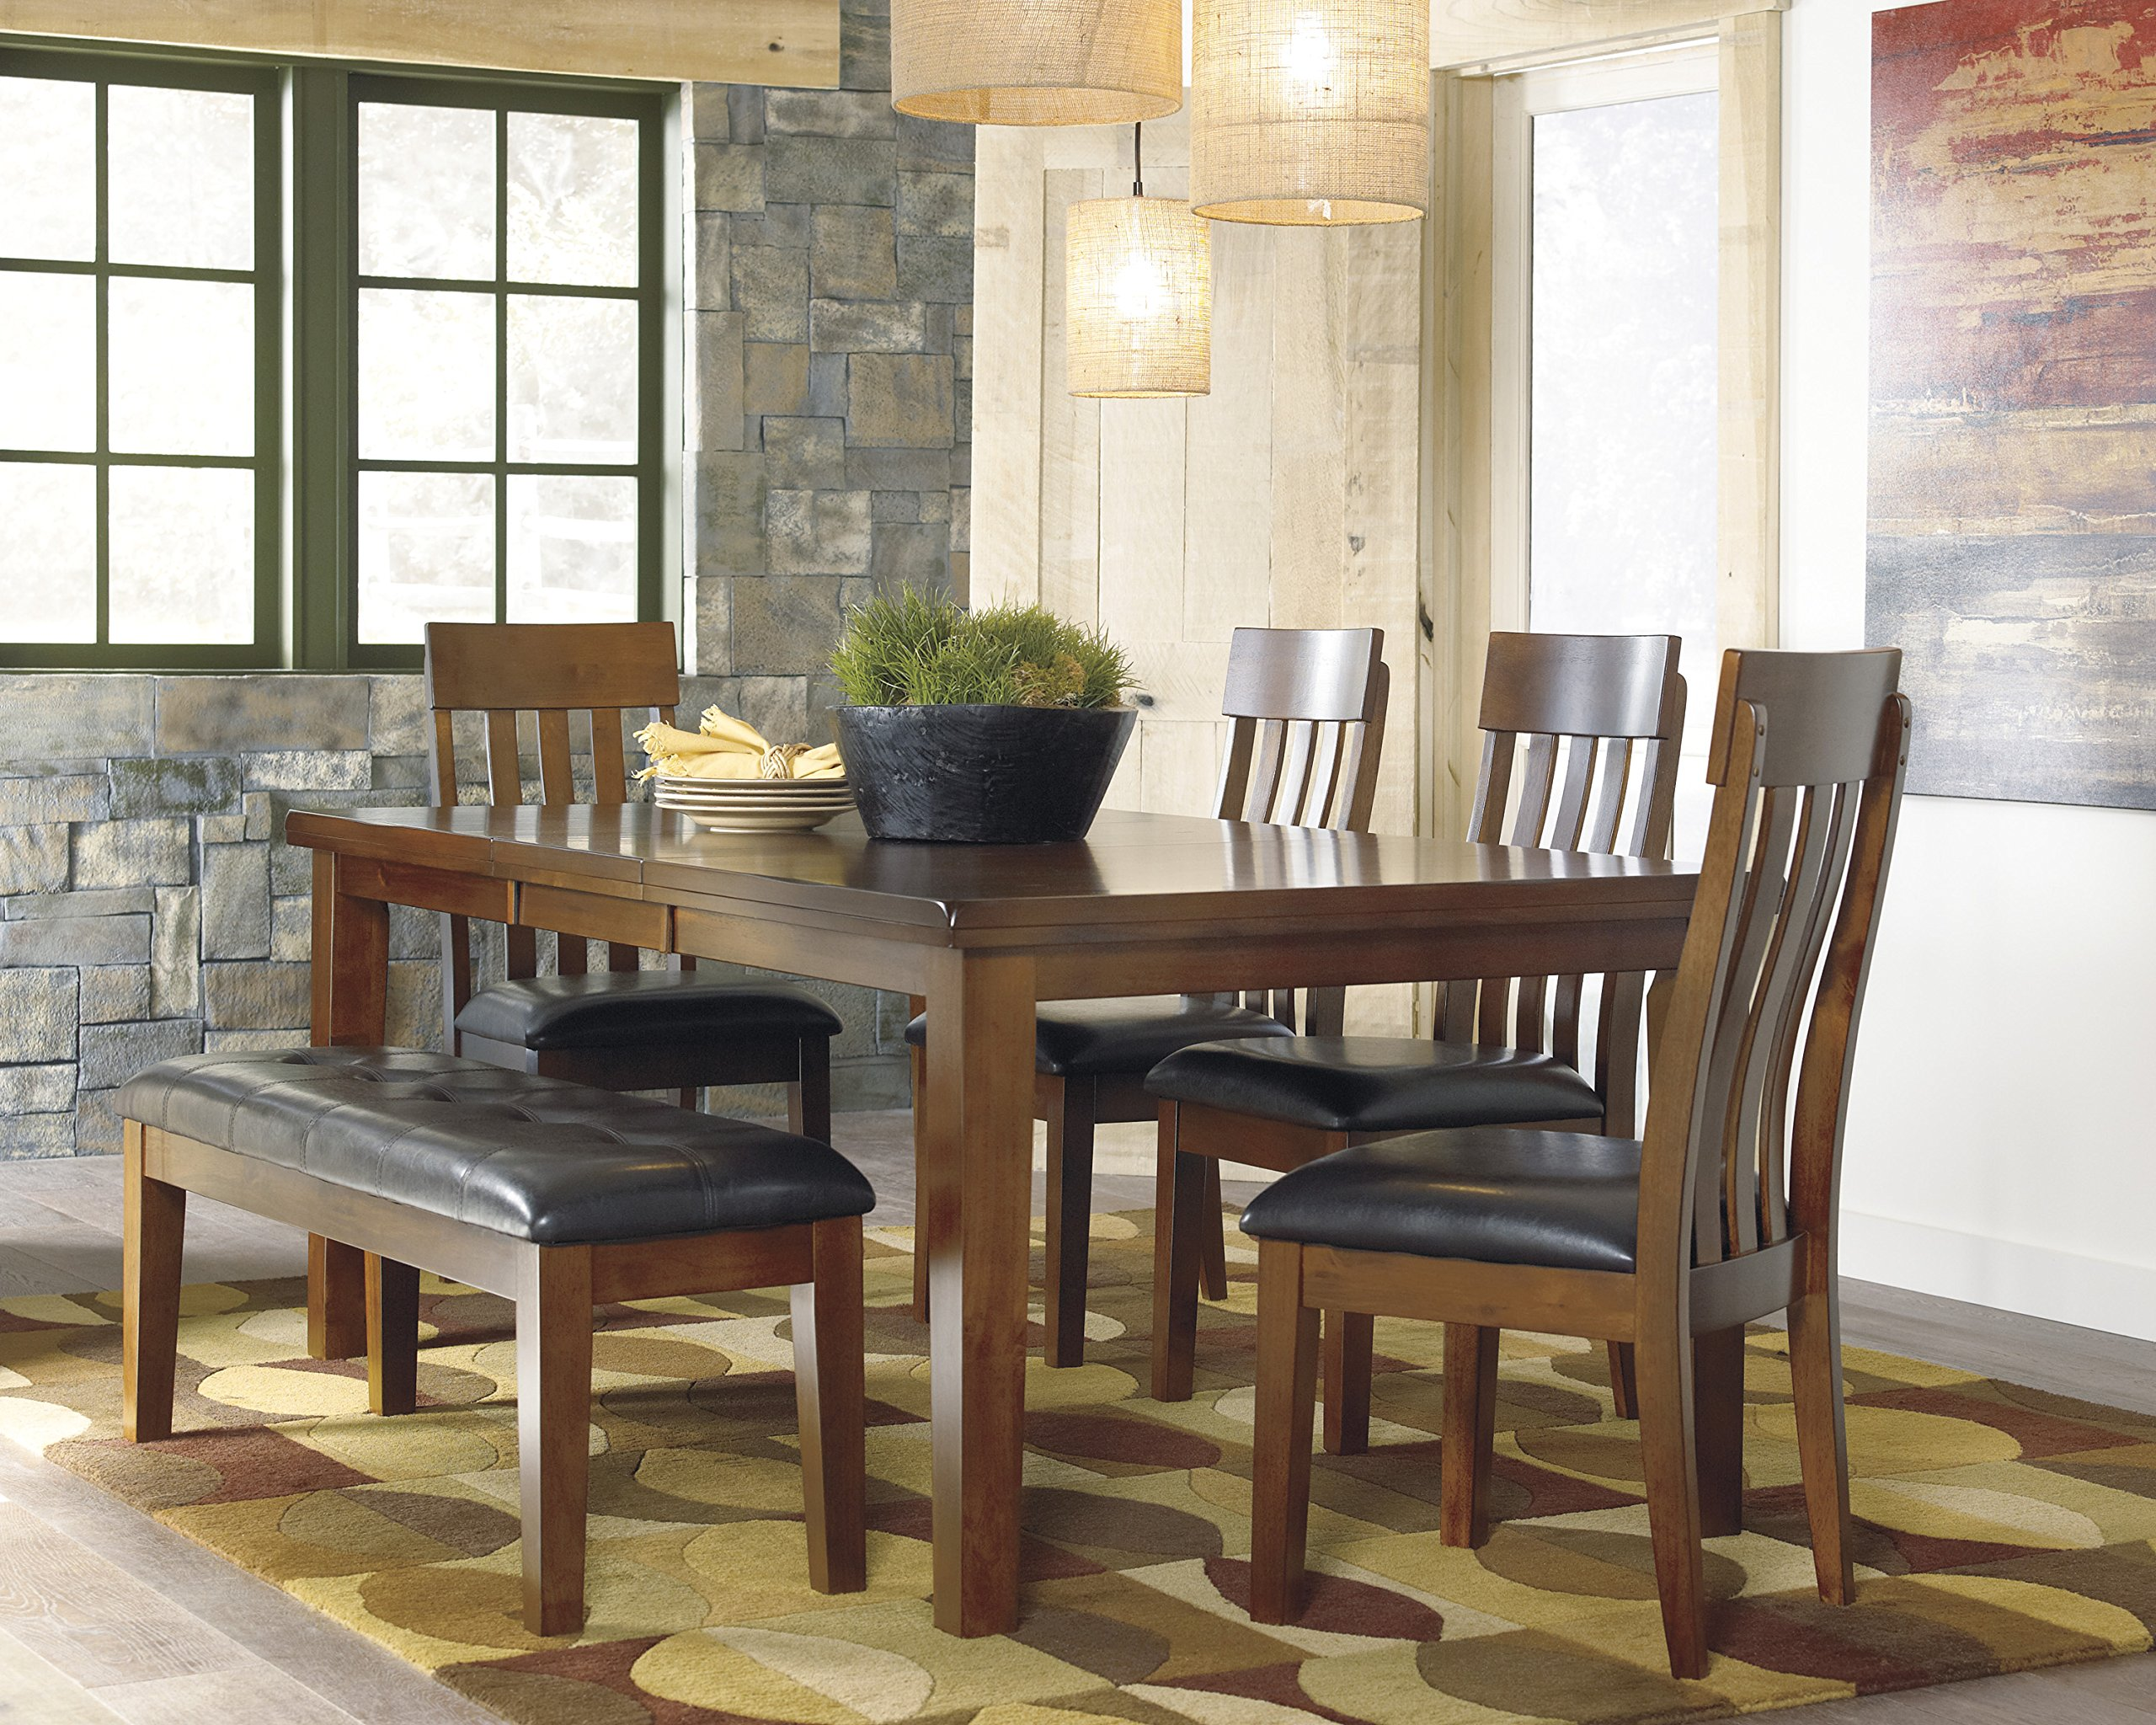 Ralerrine Medium Brown Formal Dining Set, Butterfly leaf Table and 4 Upholstered Side Chair, Bench - Made with select acacia veneers and hardwood solids Table design with thick-look tops and butterfly leaf Seat covers in brown faux leather - kitchen-dining-room-furniture, kitchen-dining-room, dining-sets - 91wKvbeZwGL -